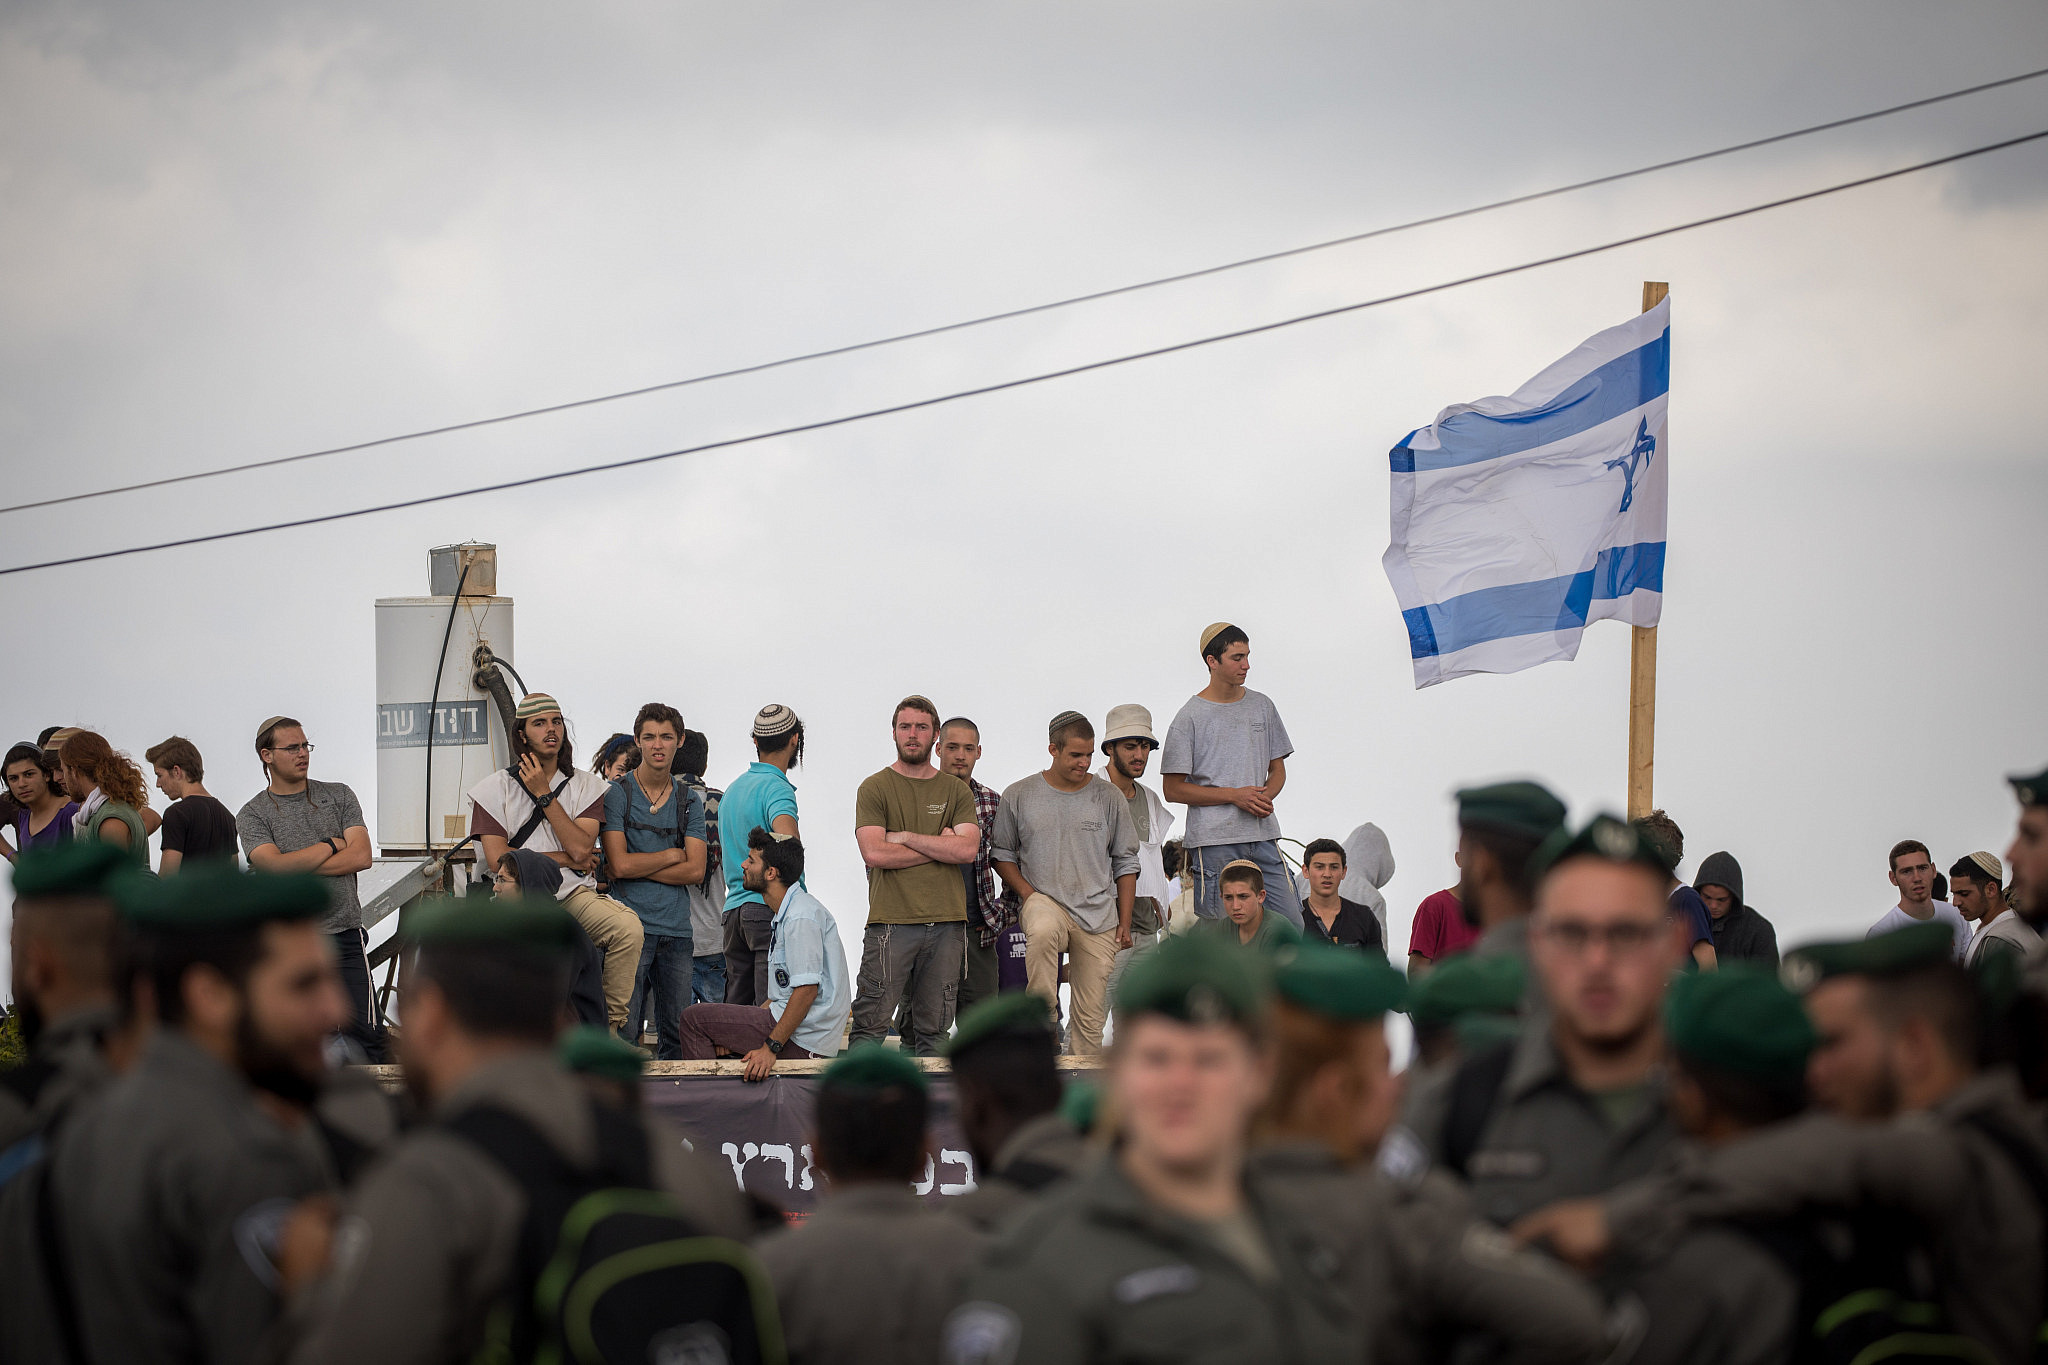 Israeli Border Police guard as settlers stand on a rooftop in the Jewish neighborhood of Netiv HaAvot in Gush Etzion, June 12, 2018. (Yonatan Sindel/Flash90)